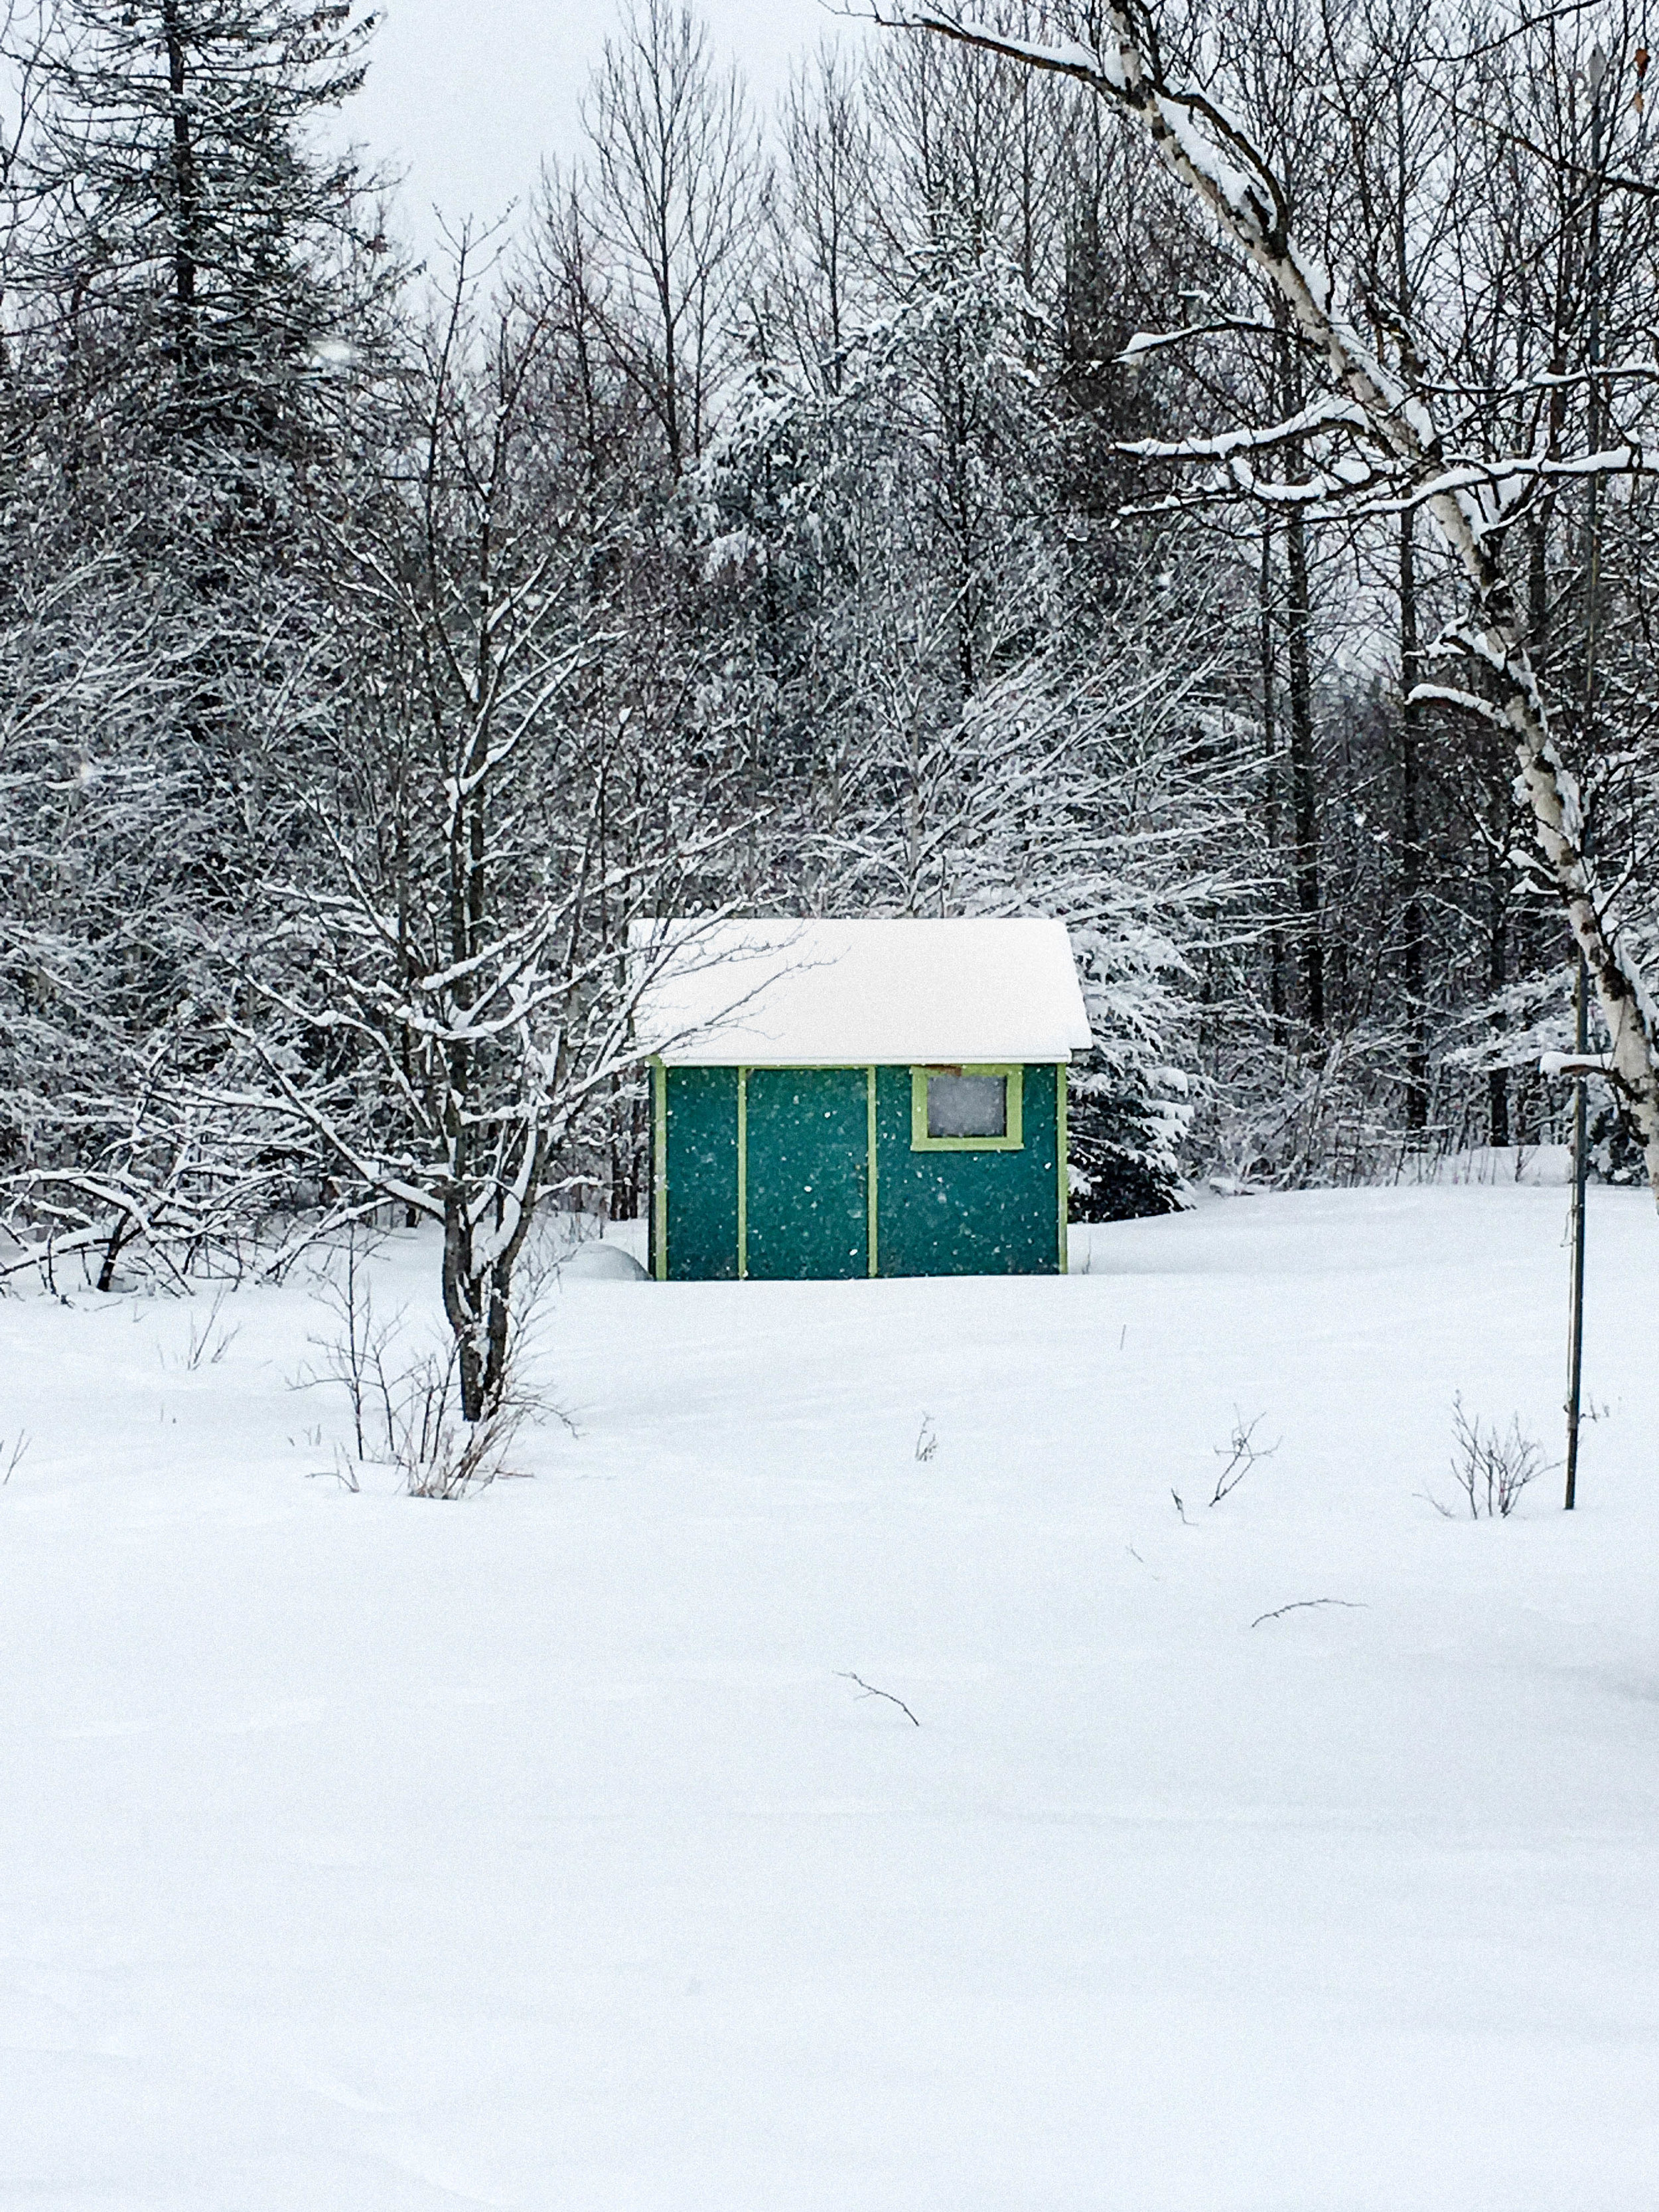 Coaticook blue cabin in a snowstorm- trip from Montreal